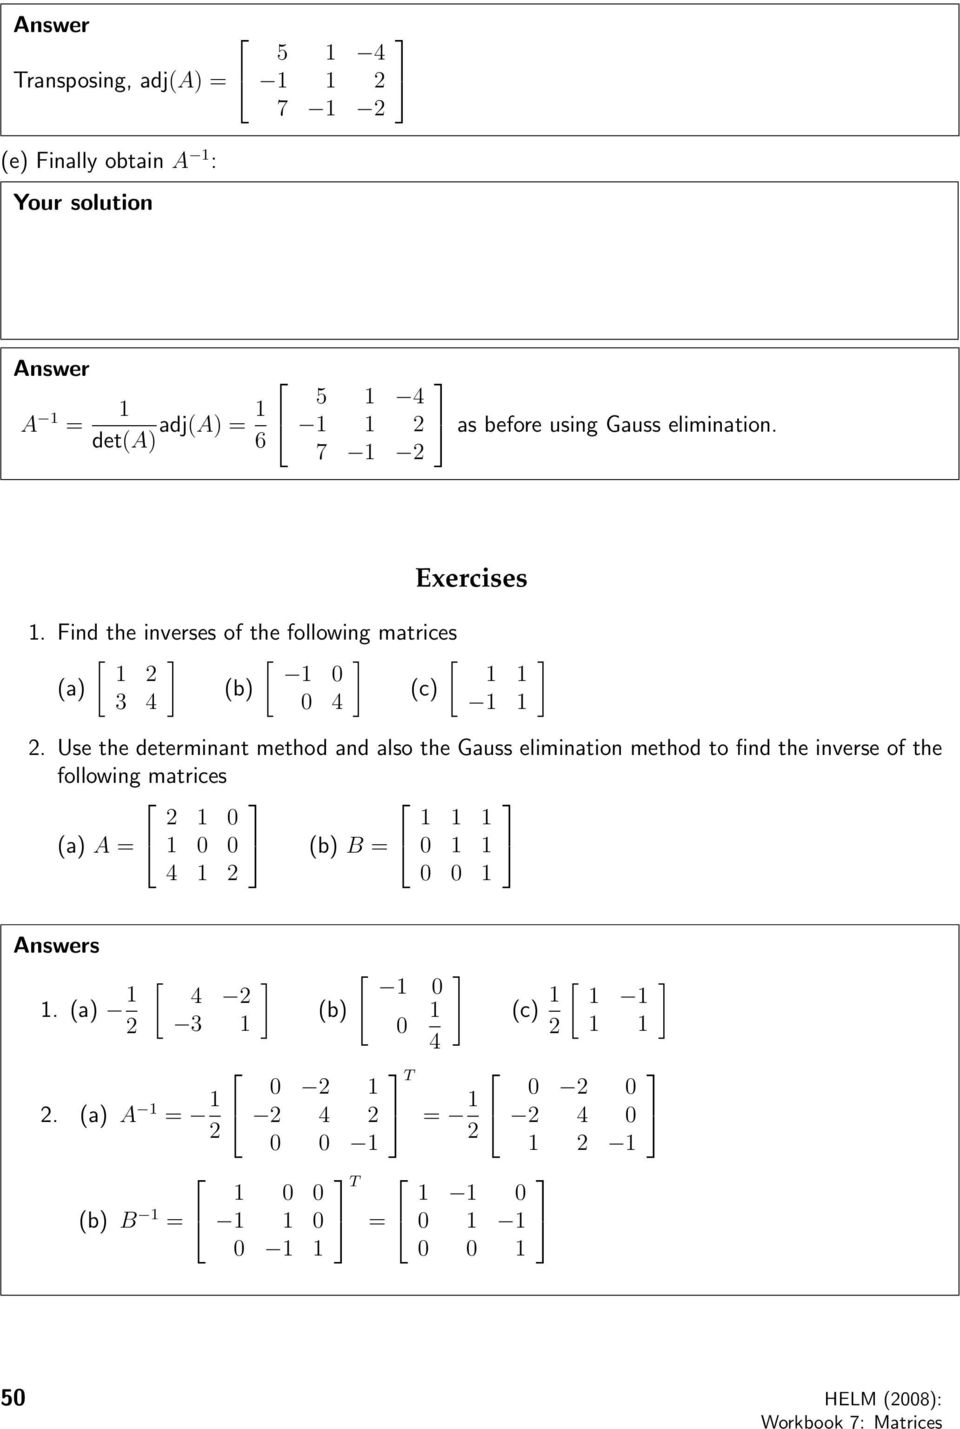 Use the determinant method and also the Gauss elimination method to find the inverse of the following